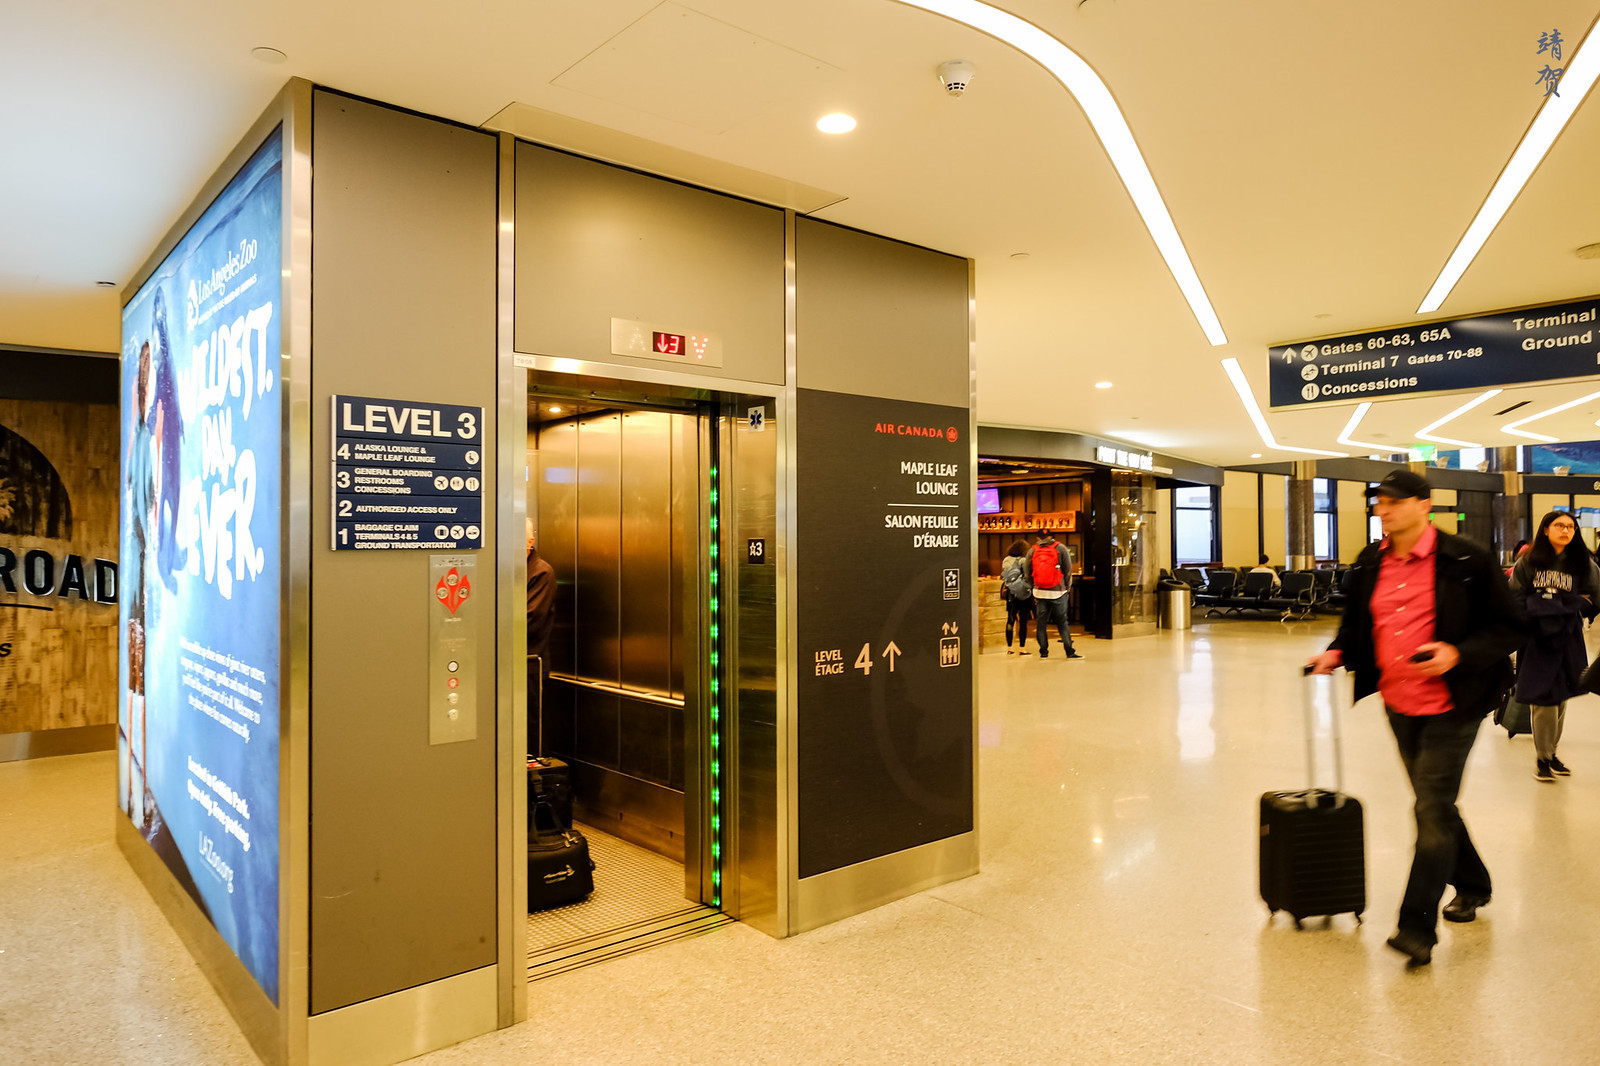 Elevators to the lounge